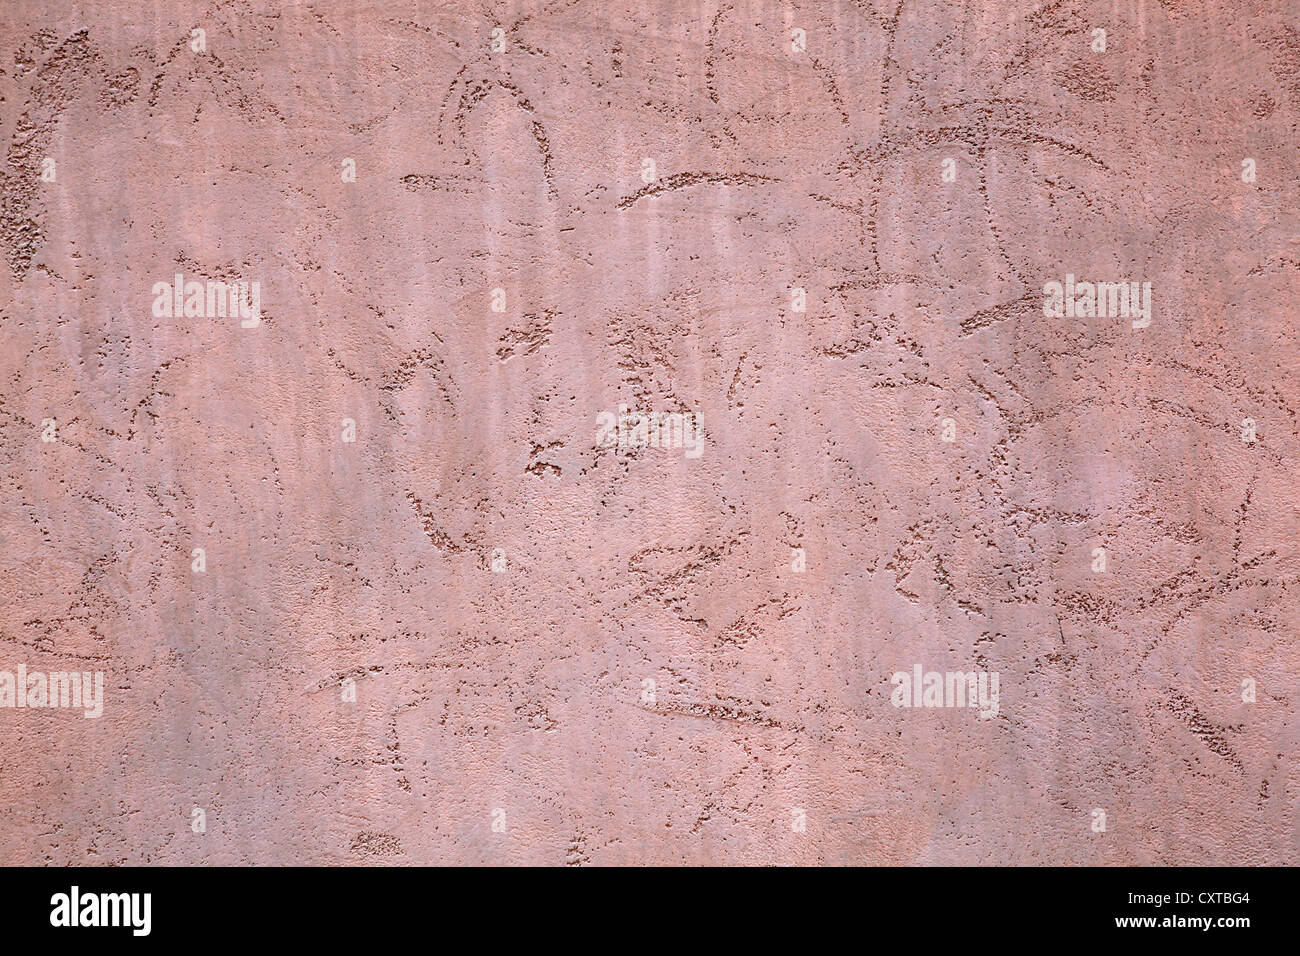 Old Stucco Wall Painted In Stock Photos & Old Stucco Wall Painted In ...